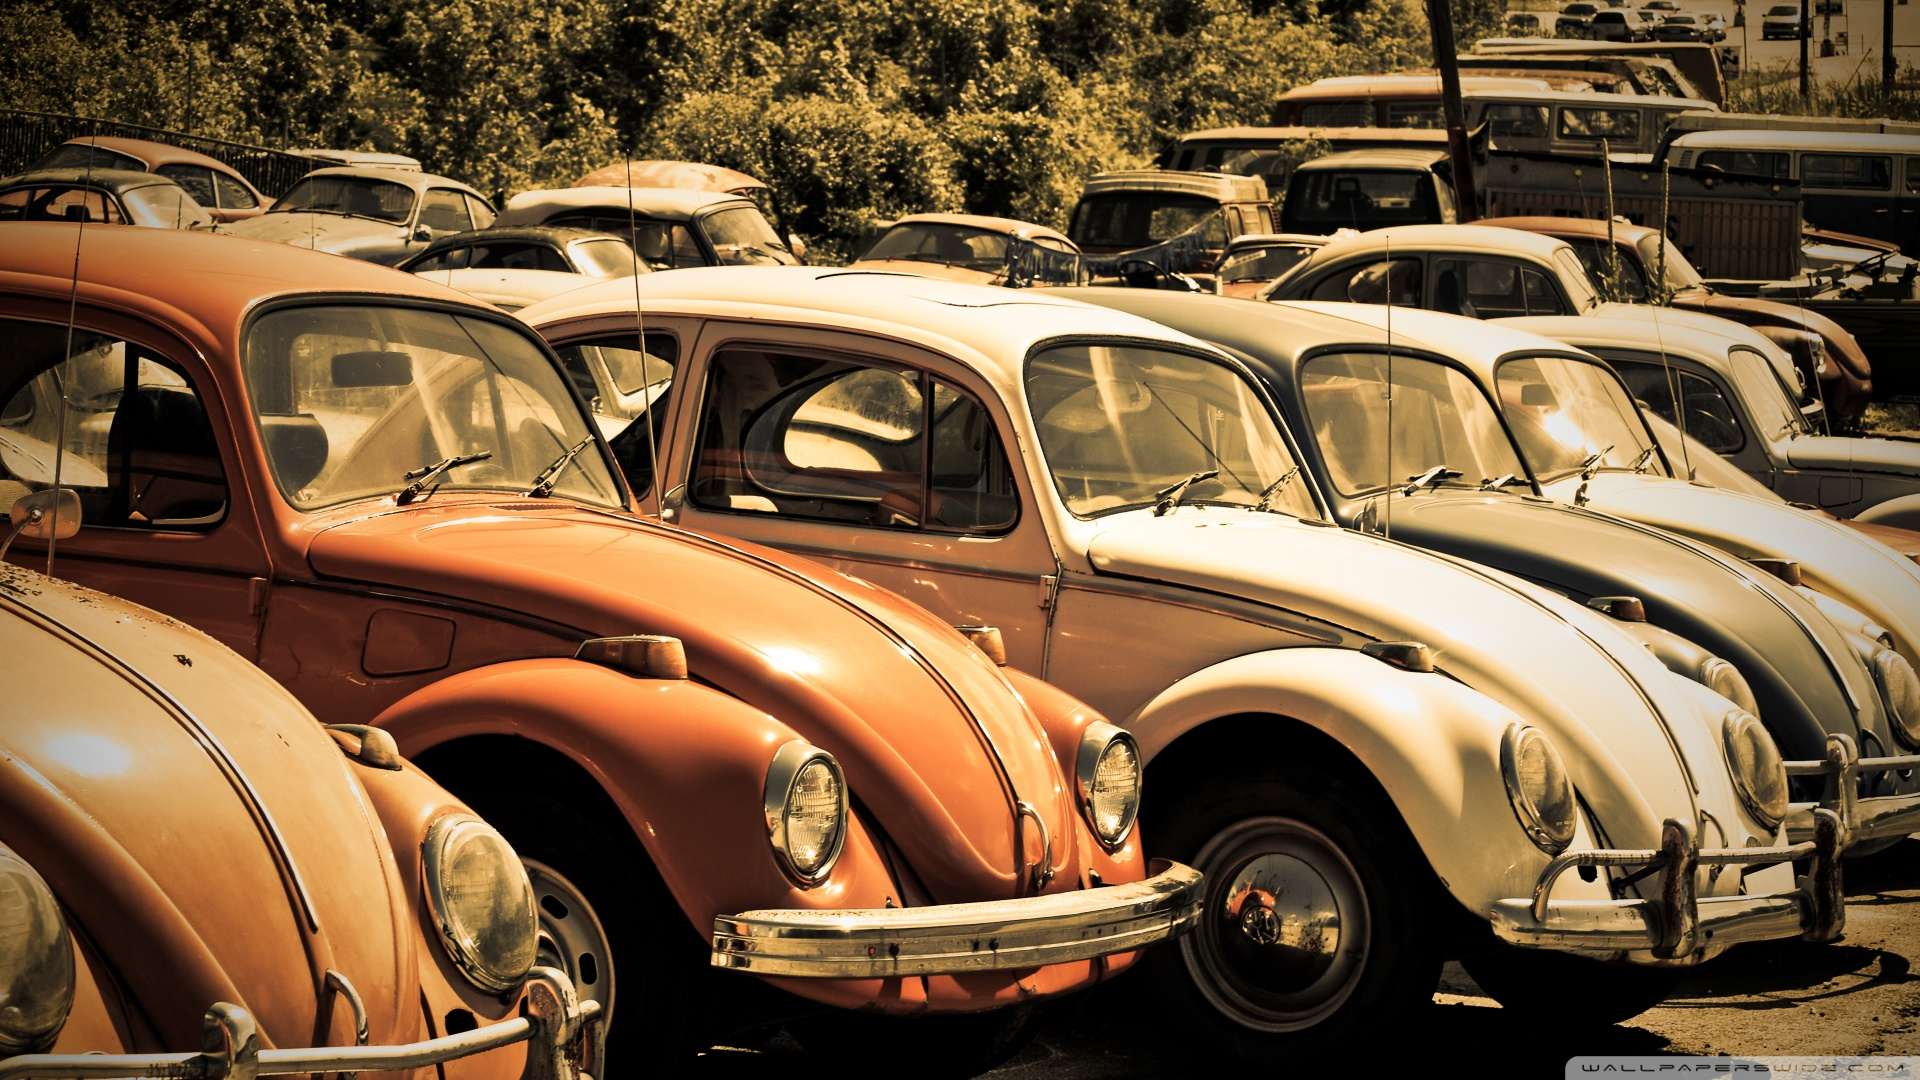 old volkswagen beetle junkyard wallpaper 19201080 BlogNOBON 1920x1080